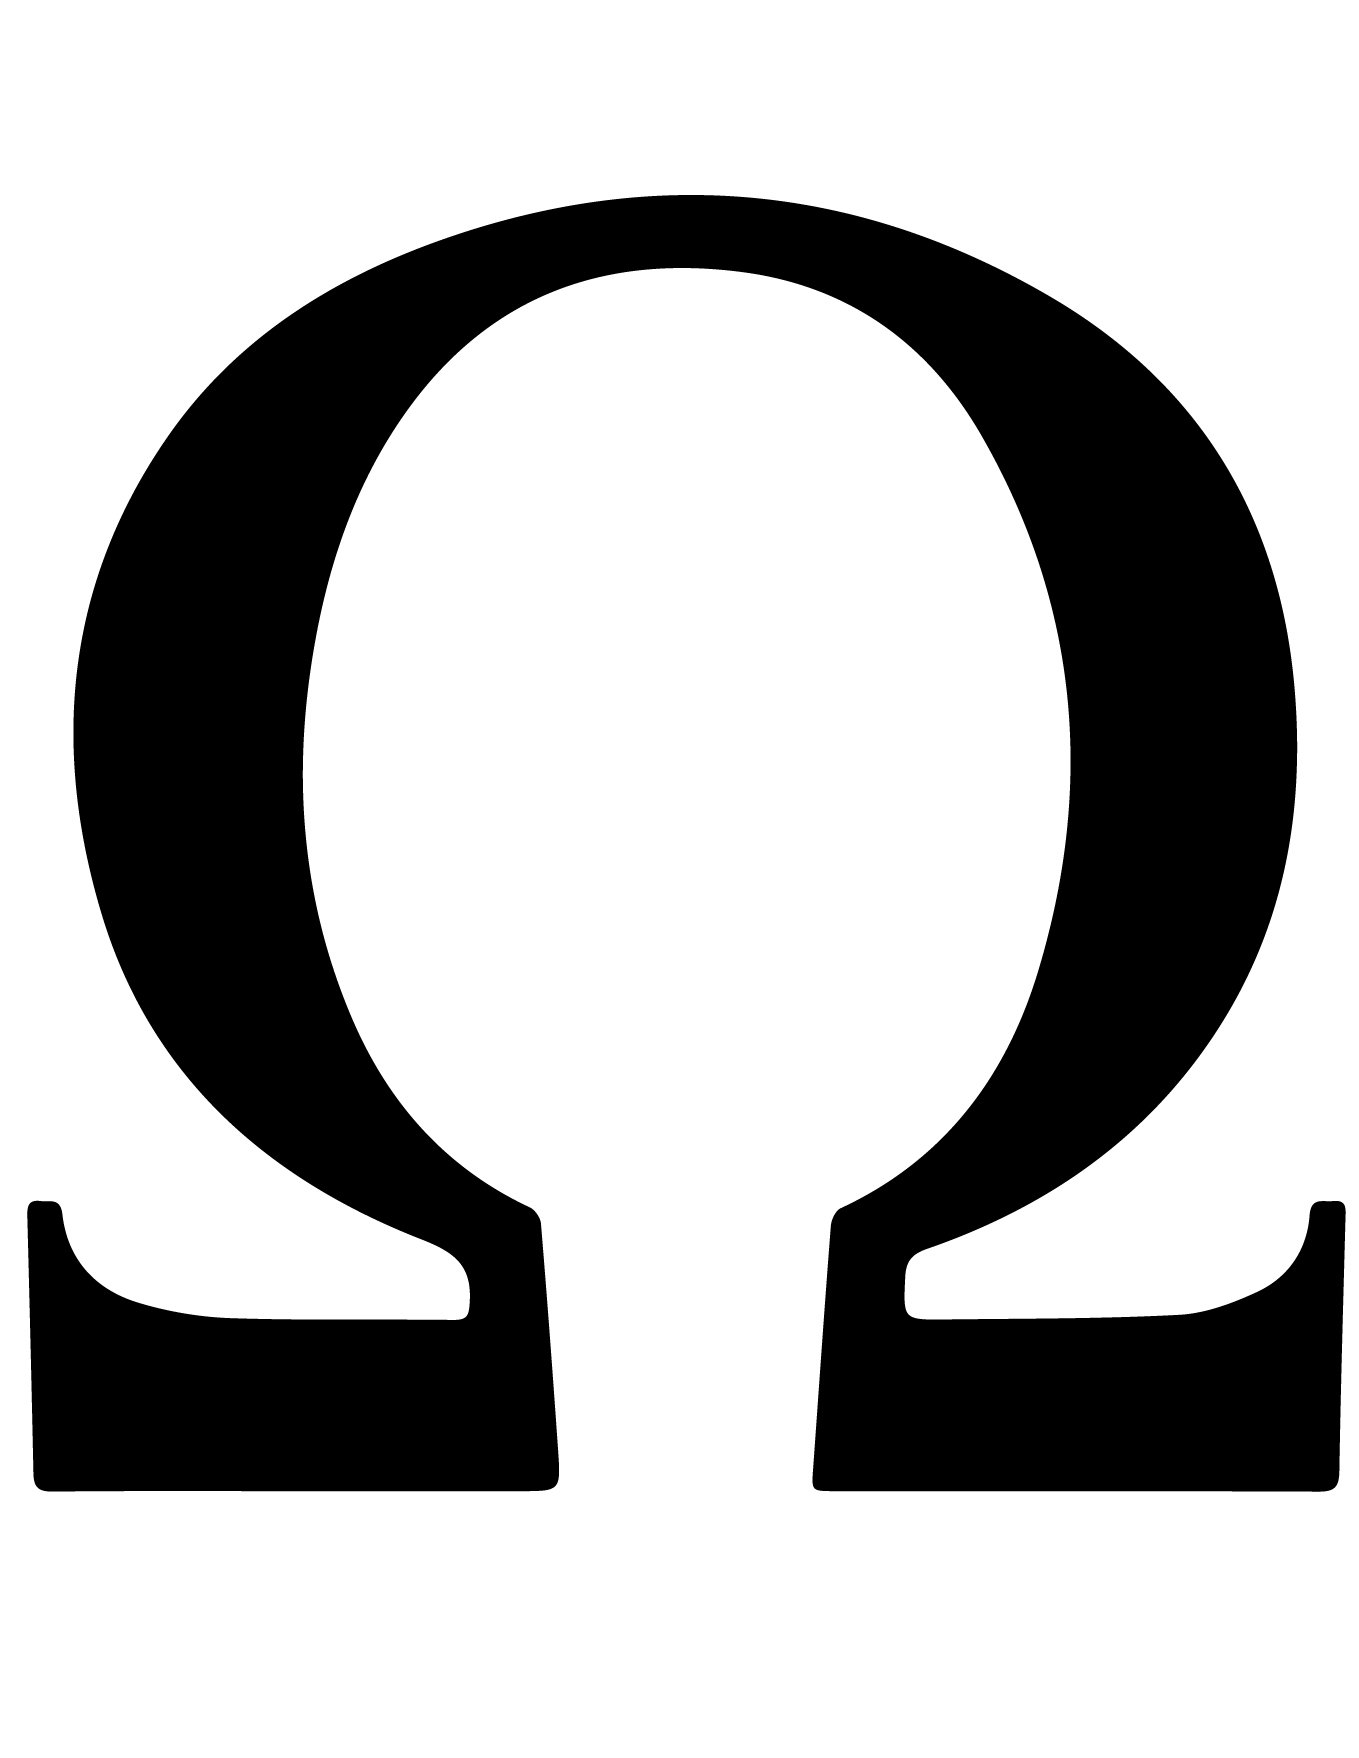 Omega symbolsign and its meaning mythologian it also represents the value of 800 in the greek numeric system which literally means a great value or the great o buycottarizona